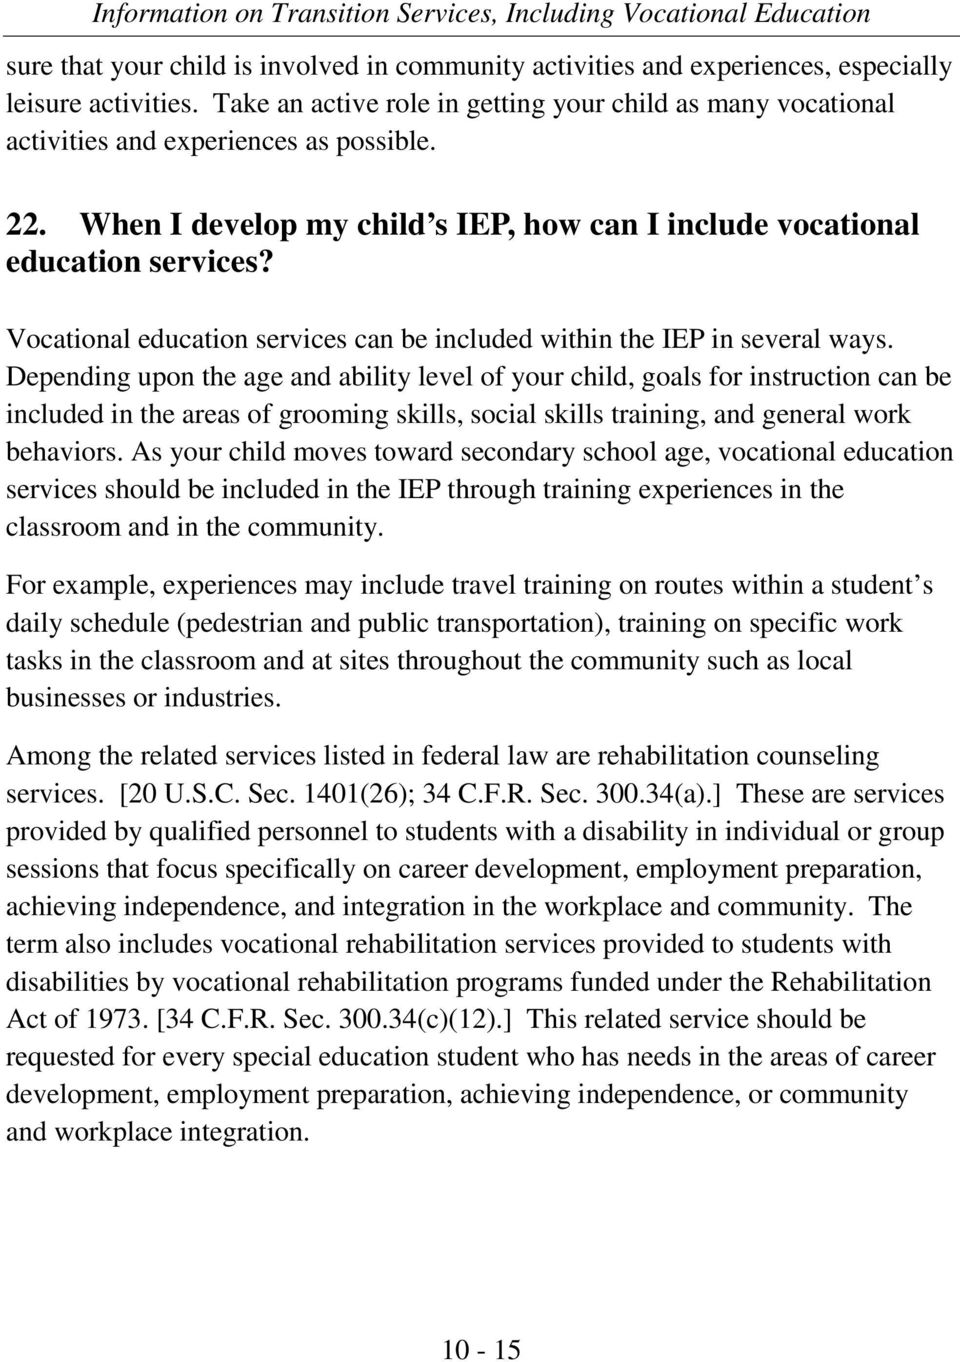 Vocational education services can be included within the IEP in several ways.